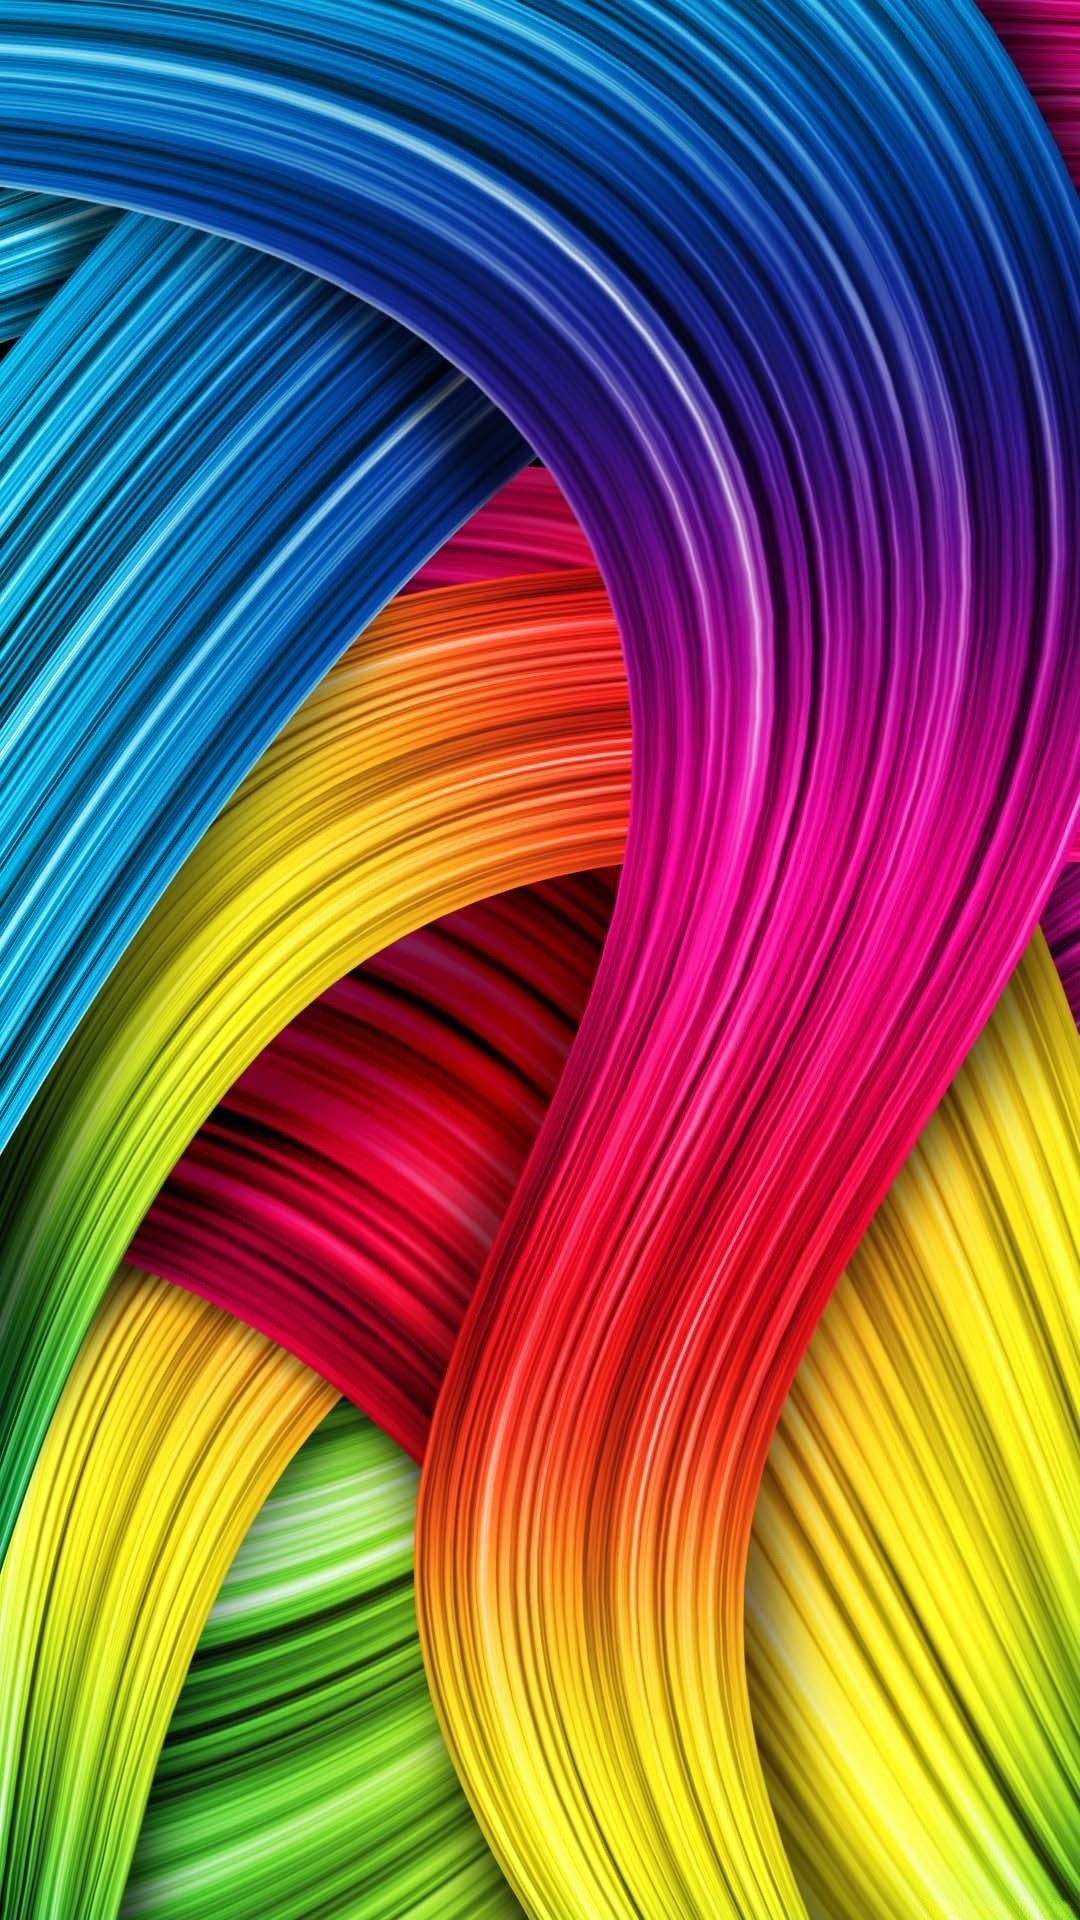 samsung Phone Wallpapers For Mobile Cell Phone Backgrounds 1080x1920